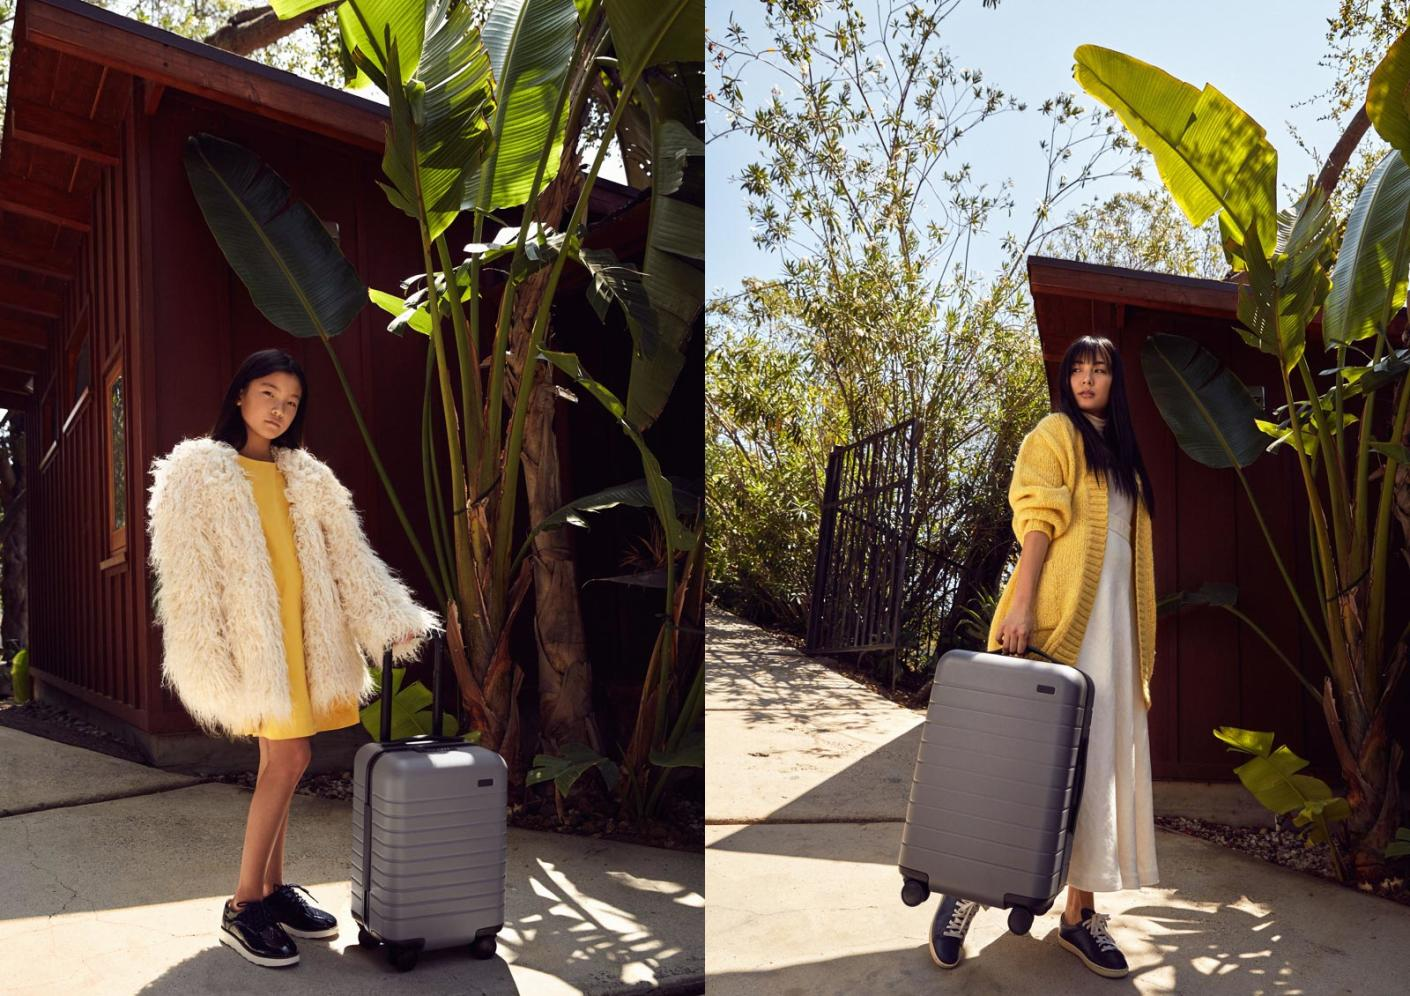 On the left is a young girl in a beige trench coat holding The Kid's Carry-On in Sand by its handle and standing in front of green bushes.  On the right is a woman in a long beige coat holding The Bigger Carry-On in Sand by its top handle and standing in front of a green bush.